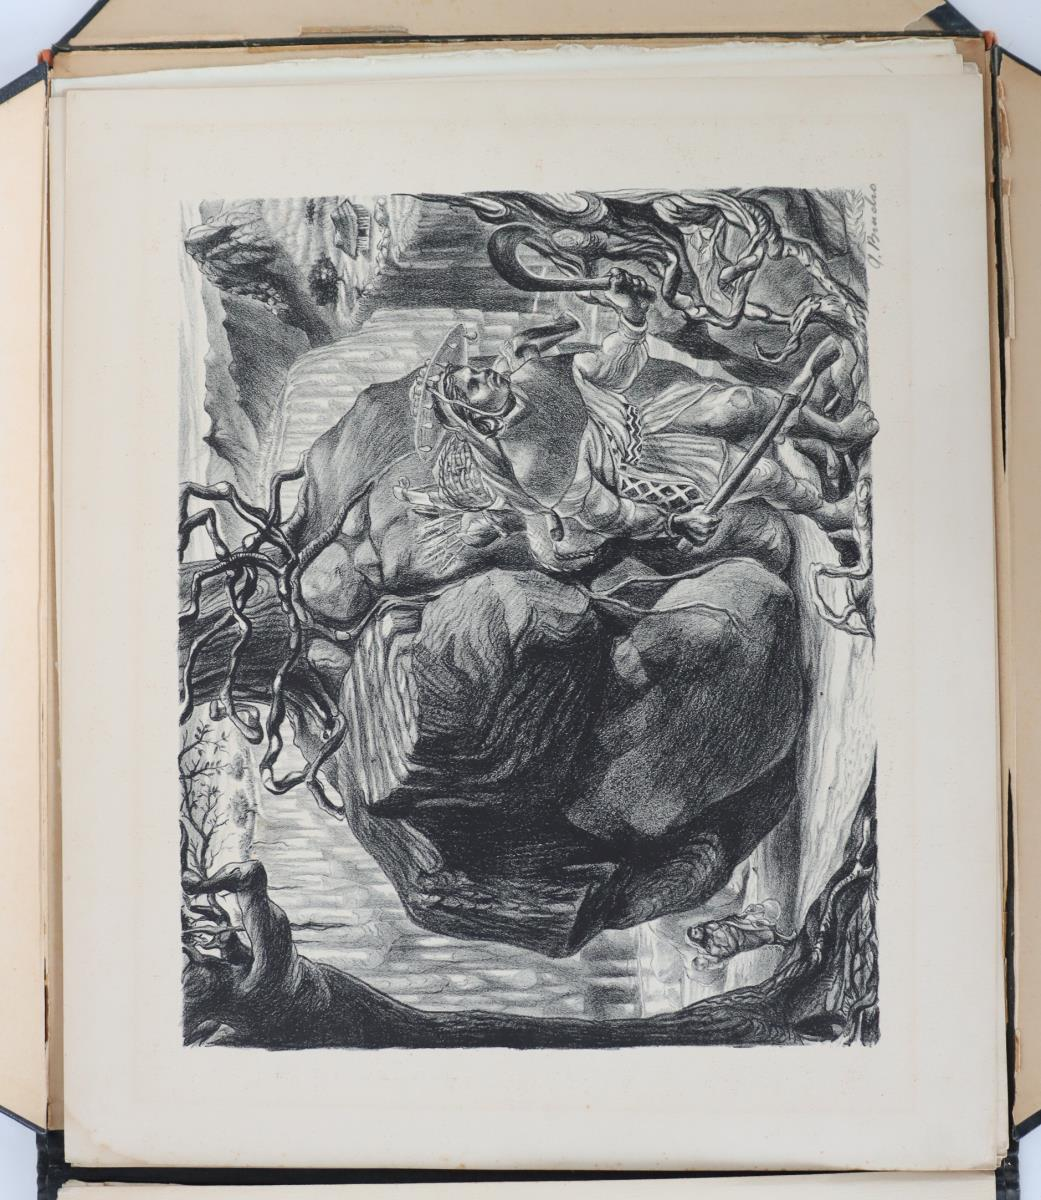 Various Artists, Mexican People Portfolio - Image 7 of 12